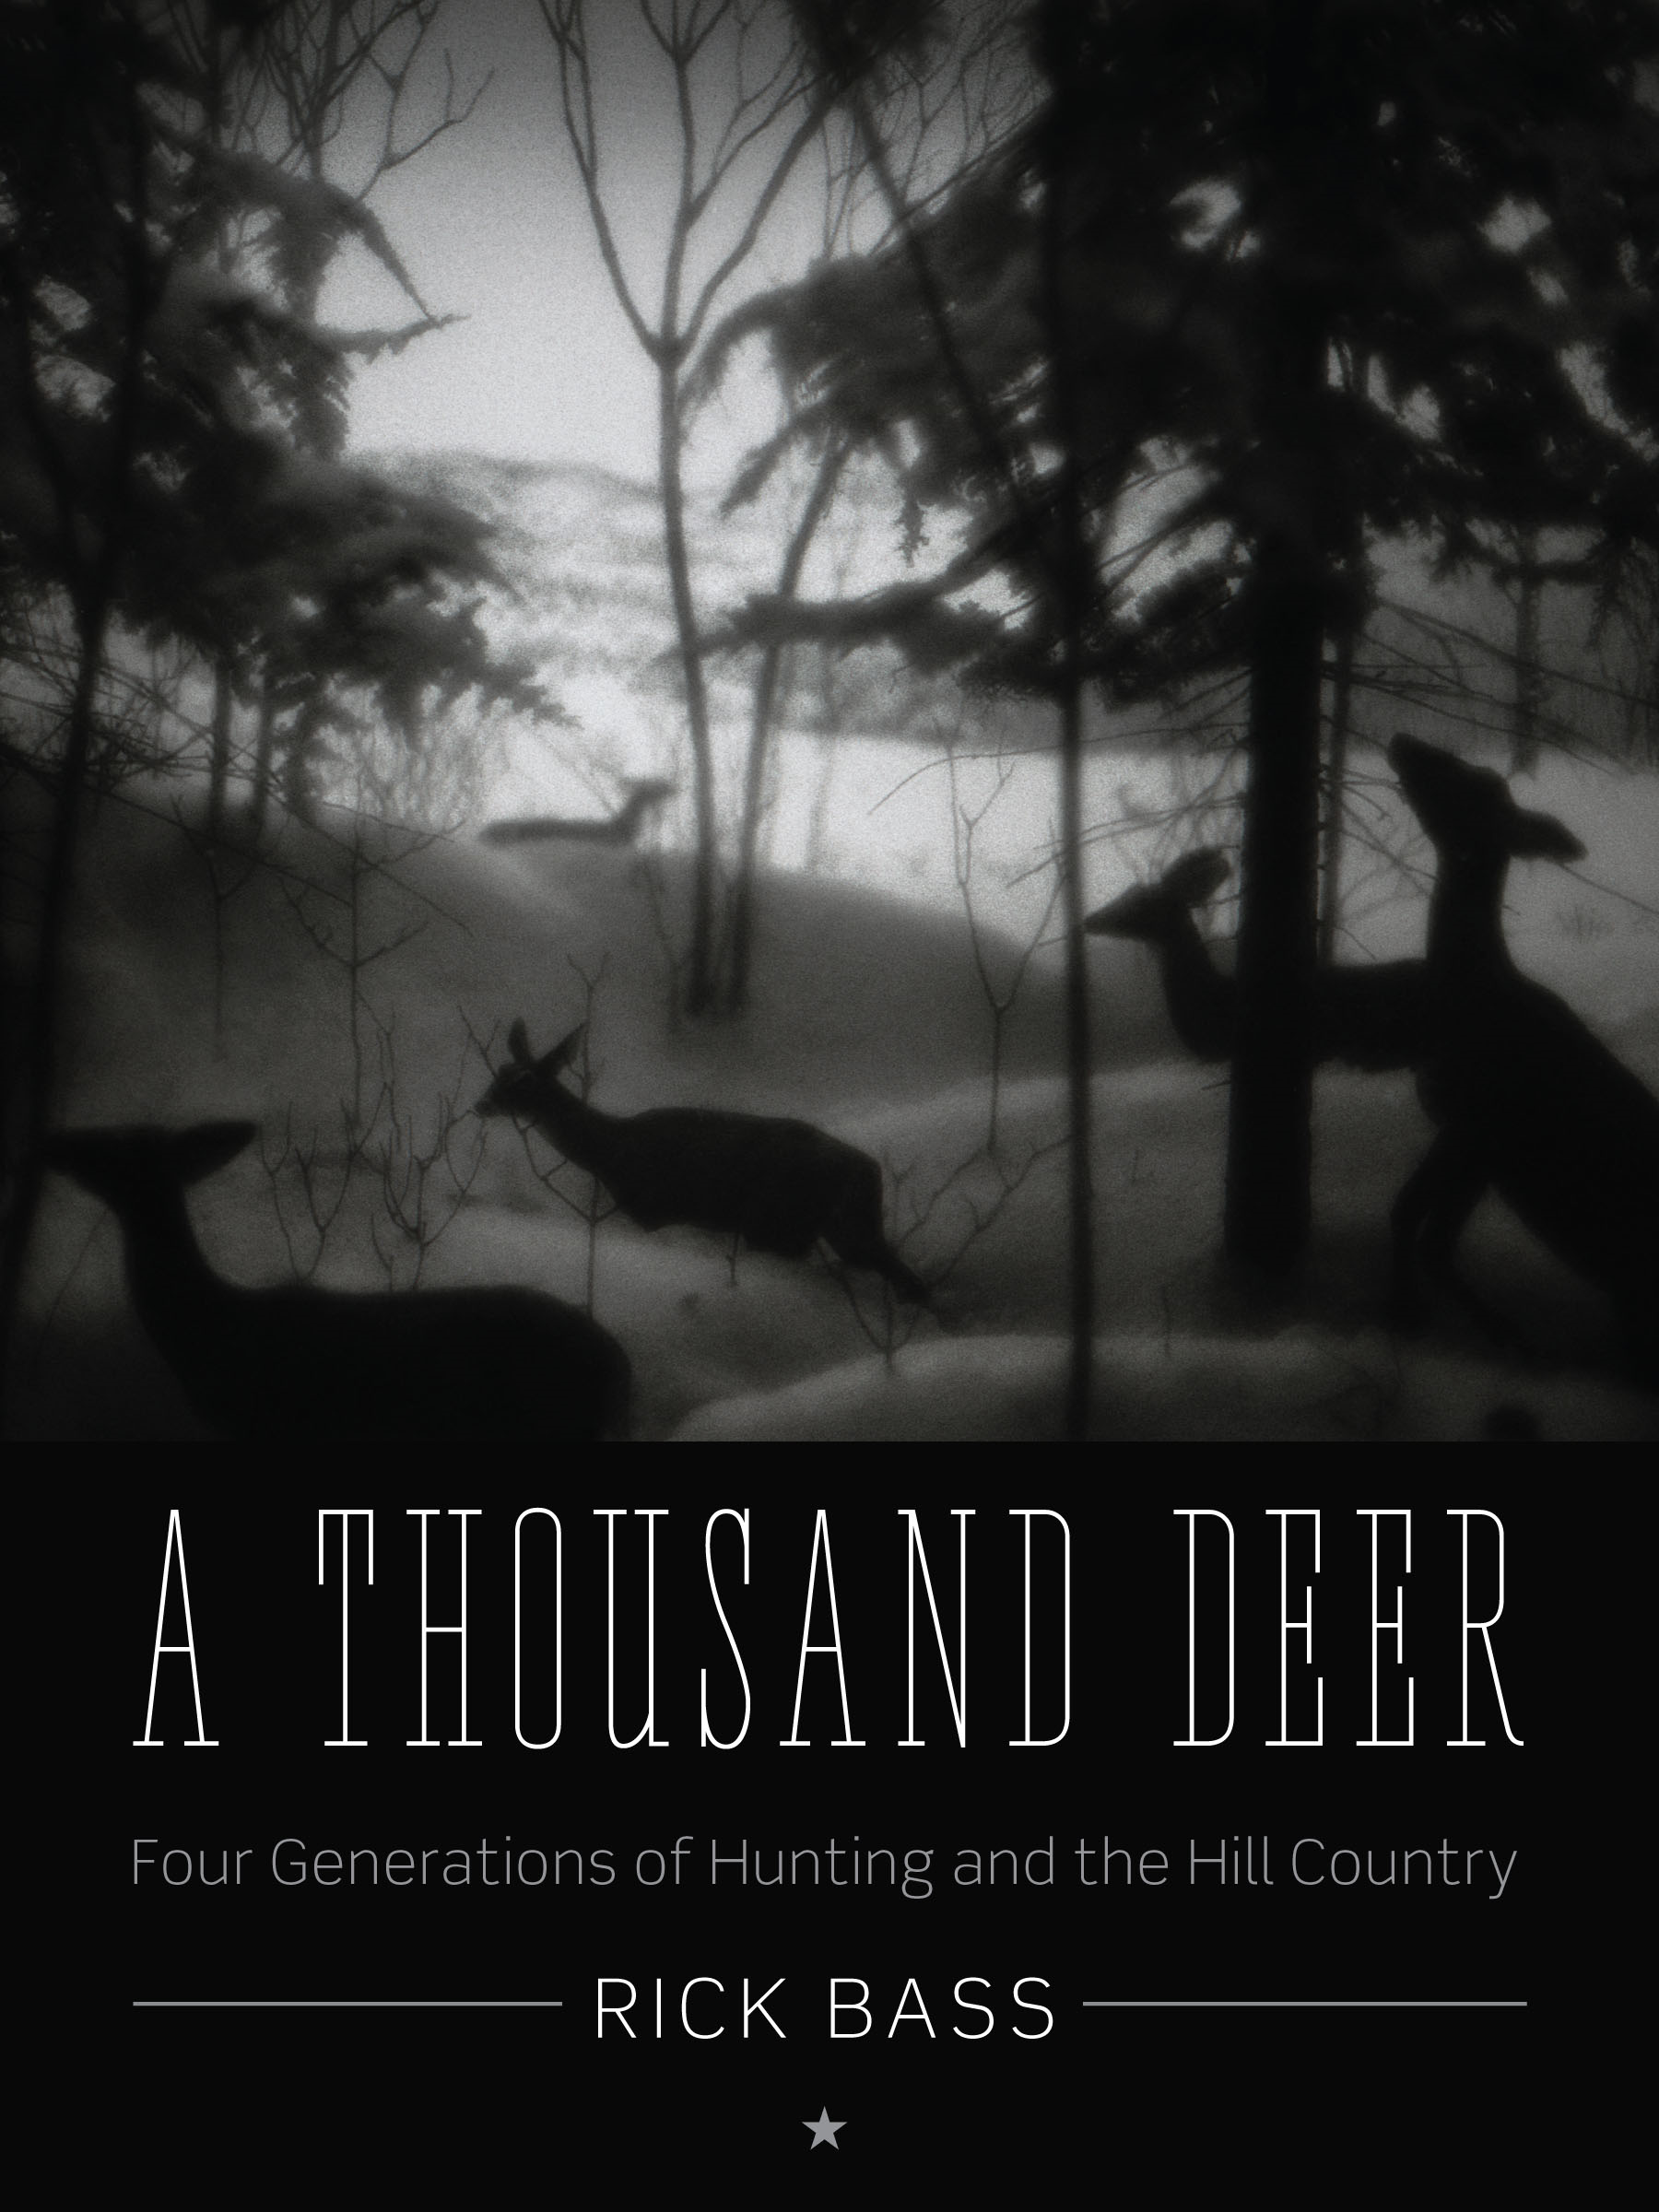 A Thousand Deer